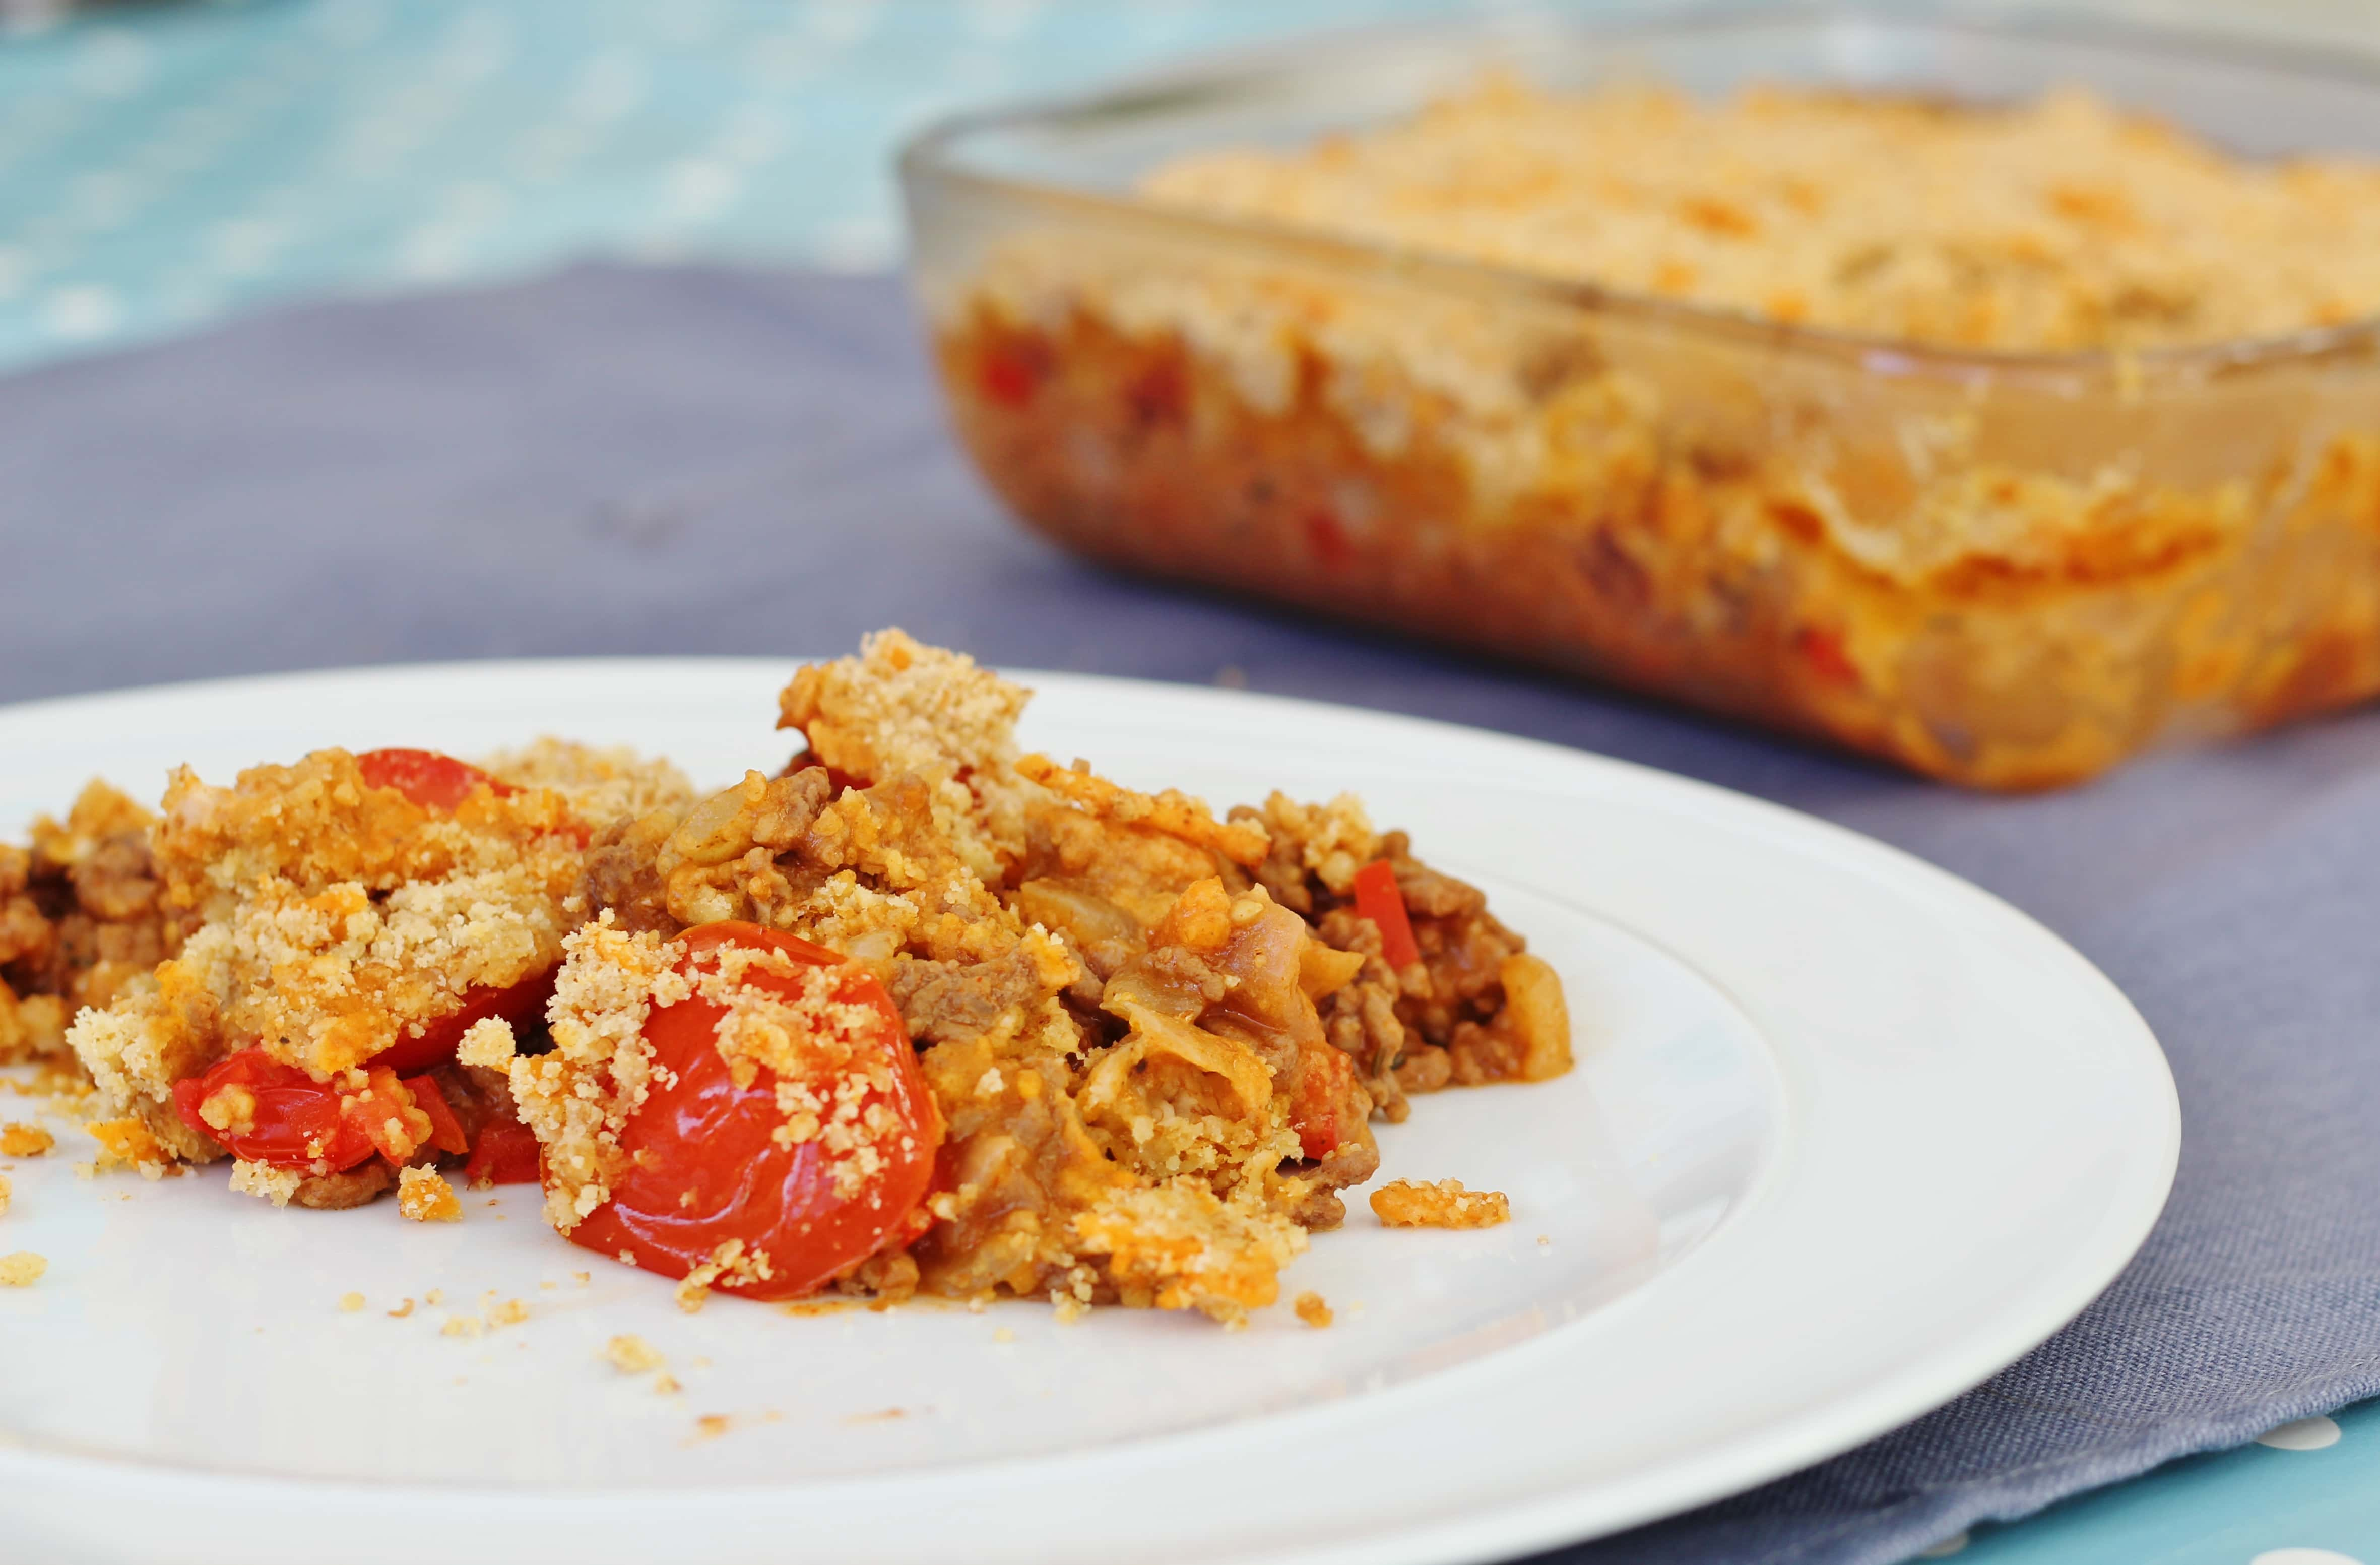 Savoury Mince and Tomato Crumble